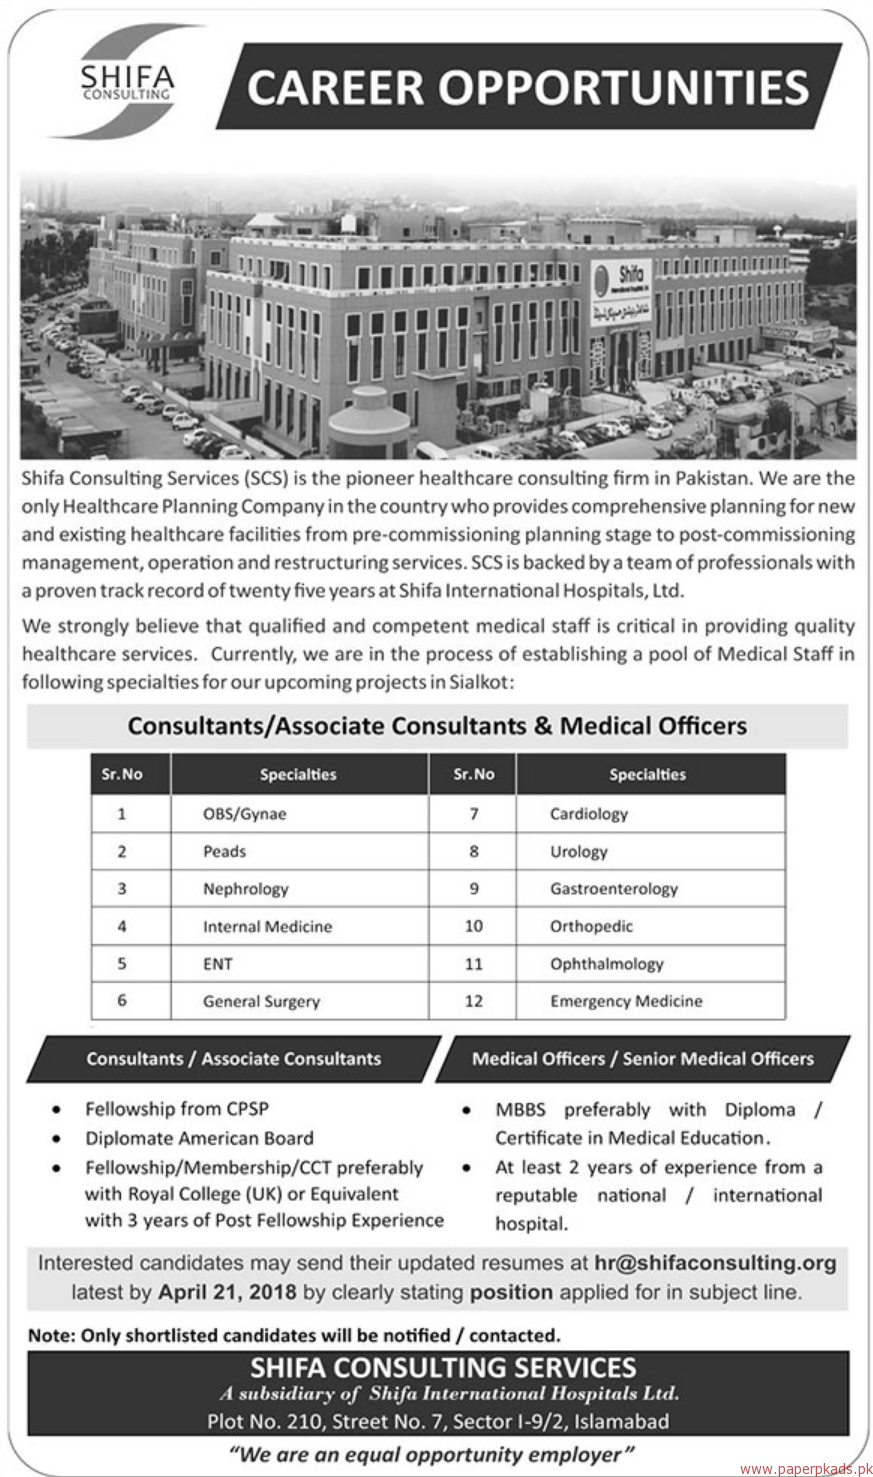 Shifa consulting Services Jobs 2018 Latest